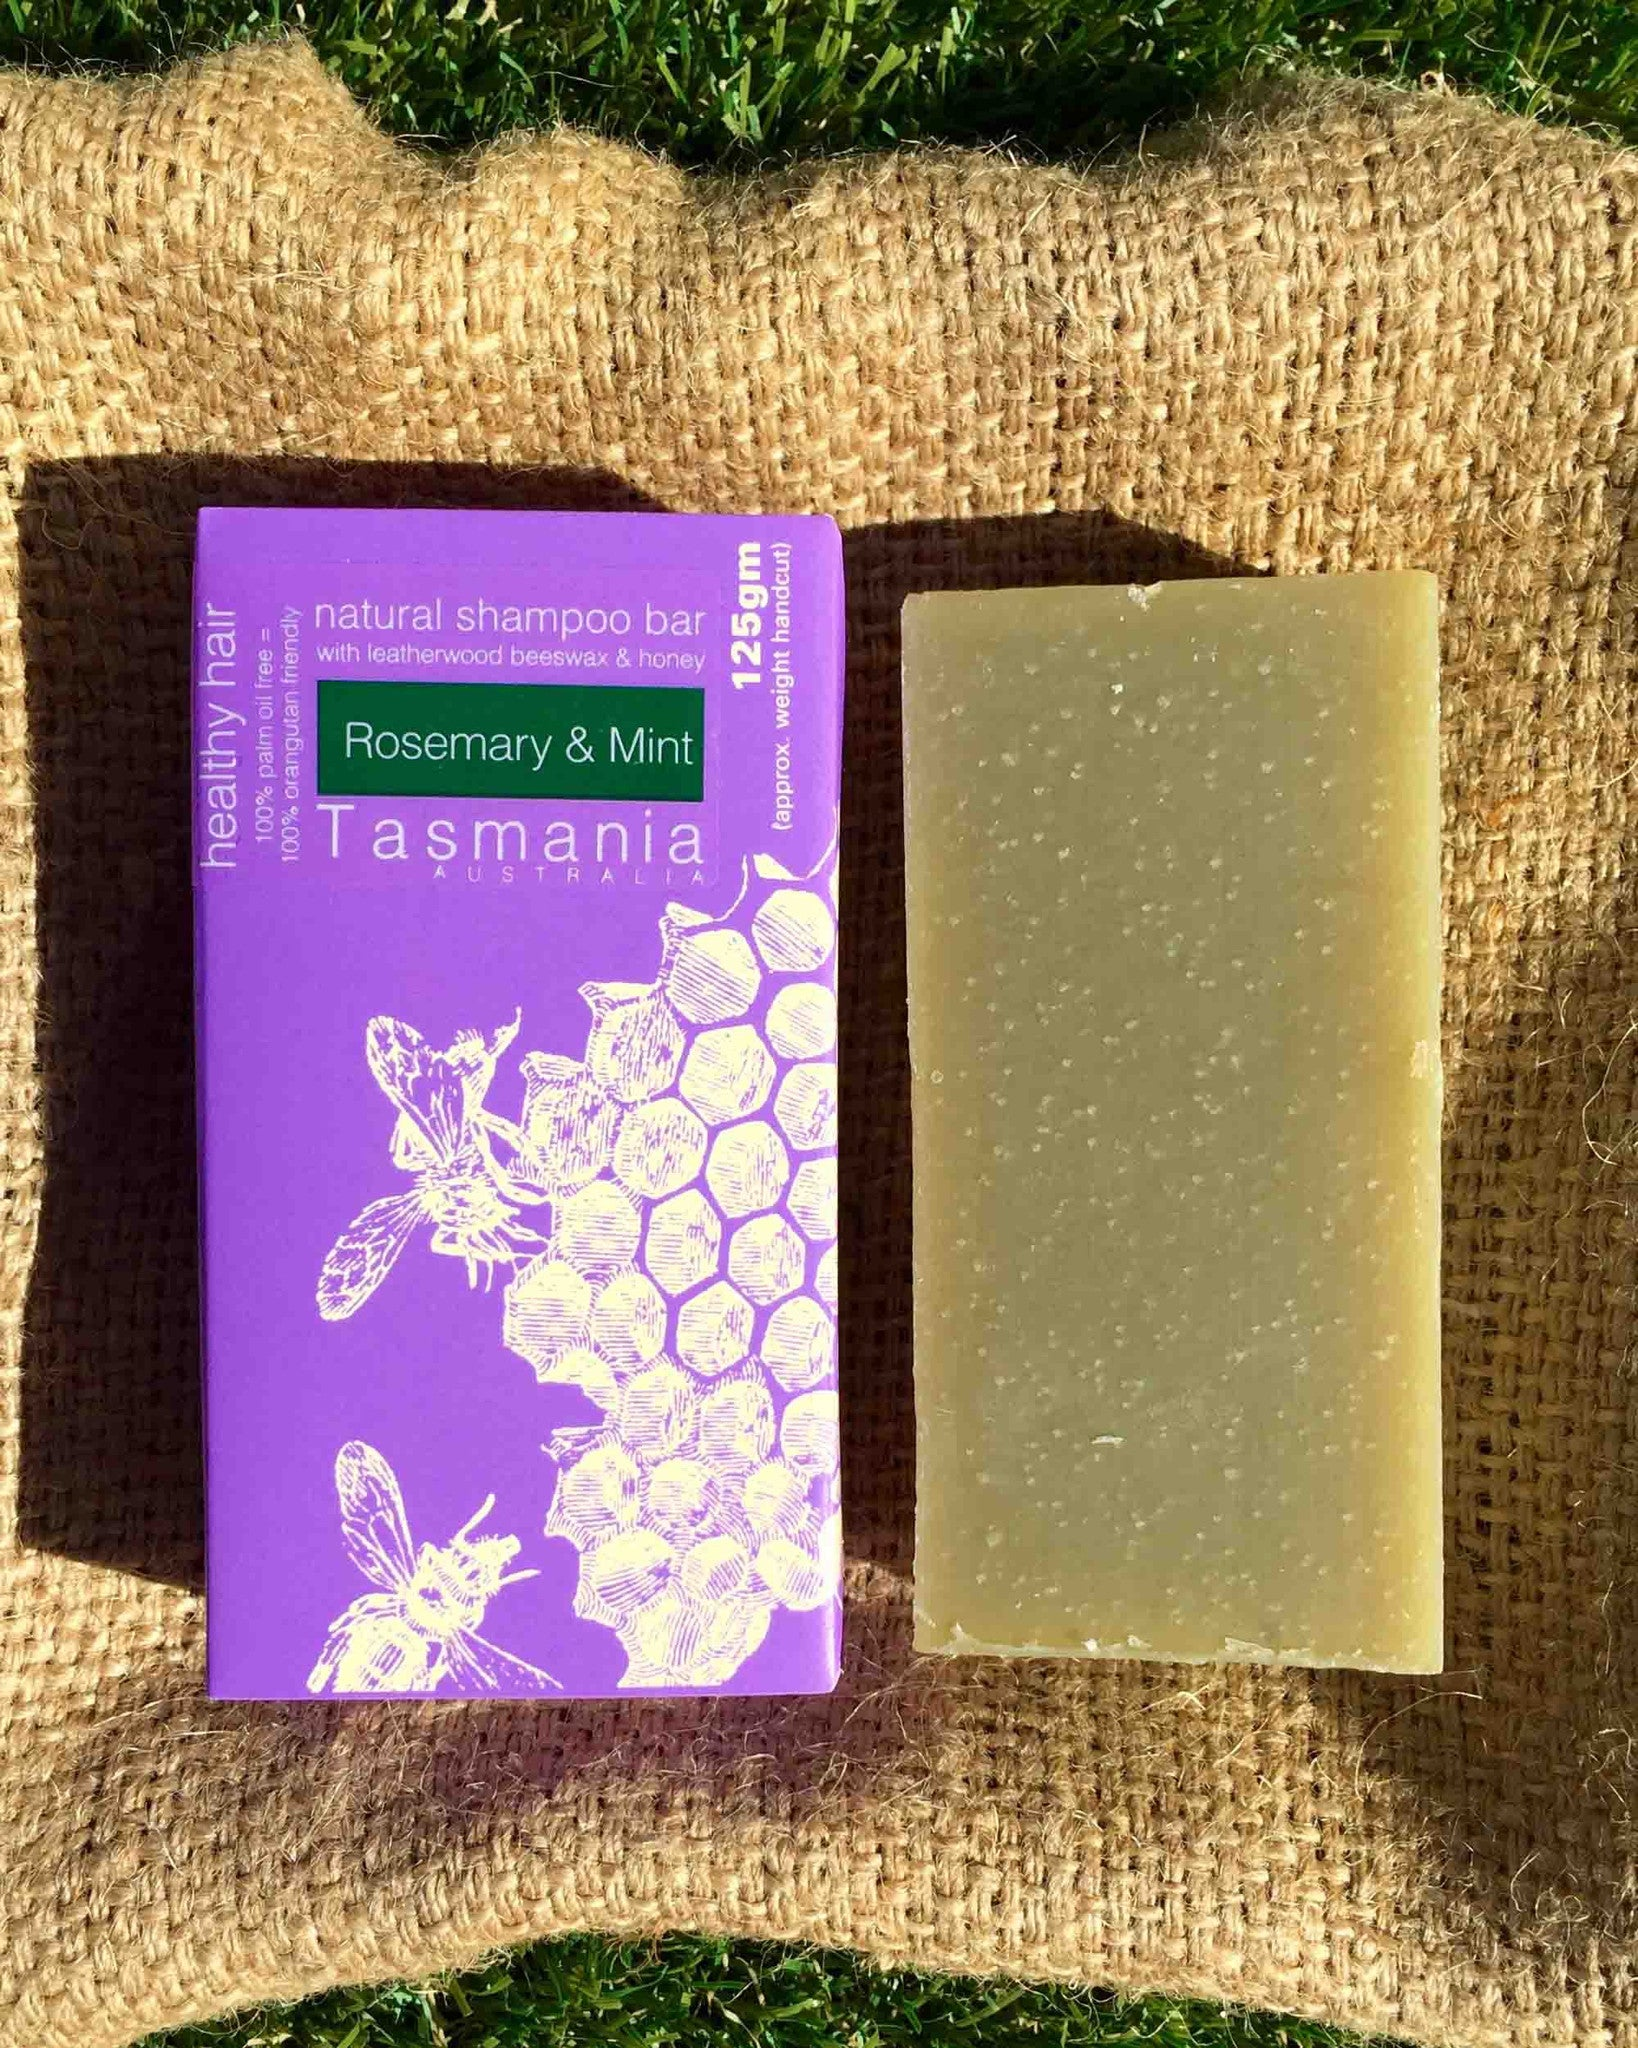 Honey Shampoo Bar - Rosemary and Mint with Leatherwood Beeswax 蜂蜜洗髮梘 - 迷迭香薄荷革木蜂蠟